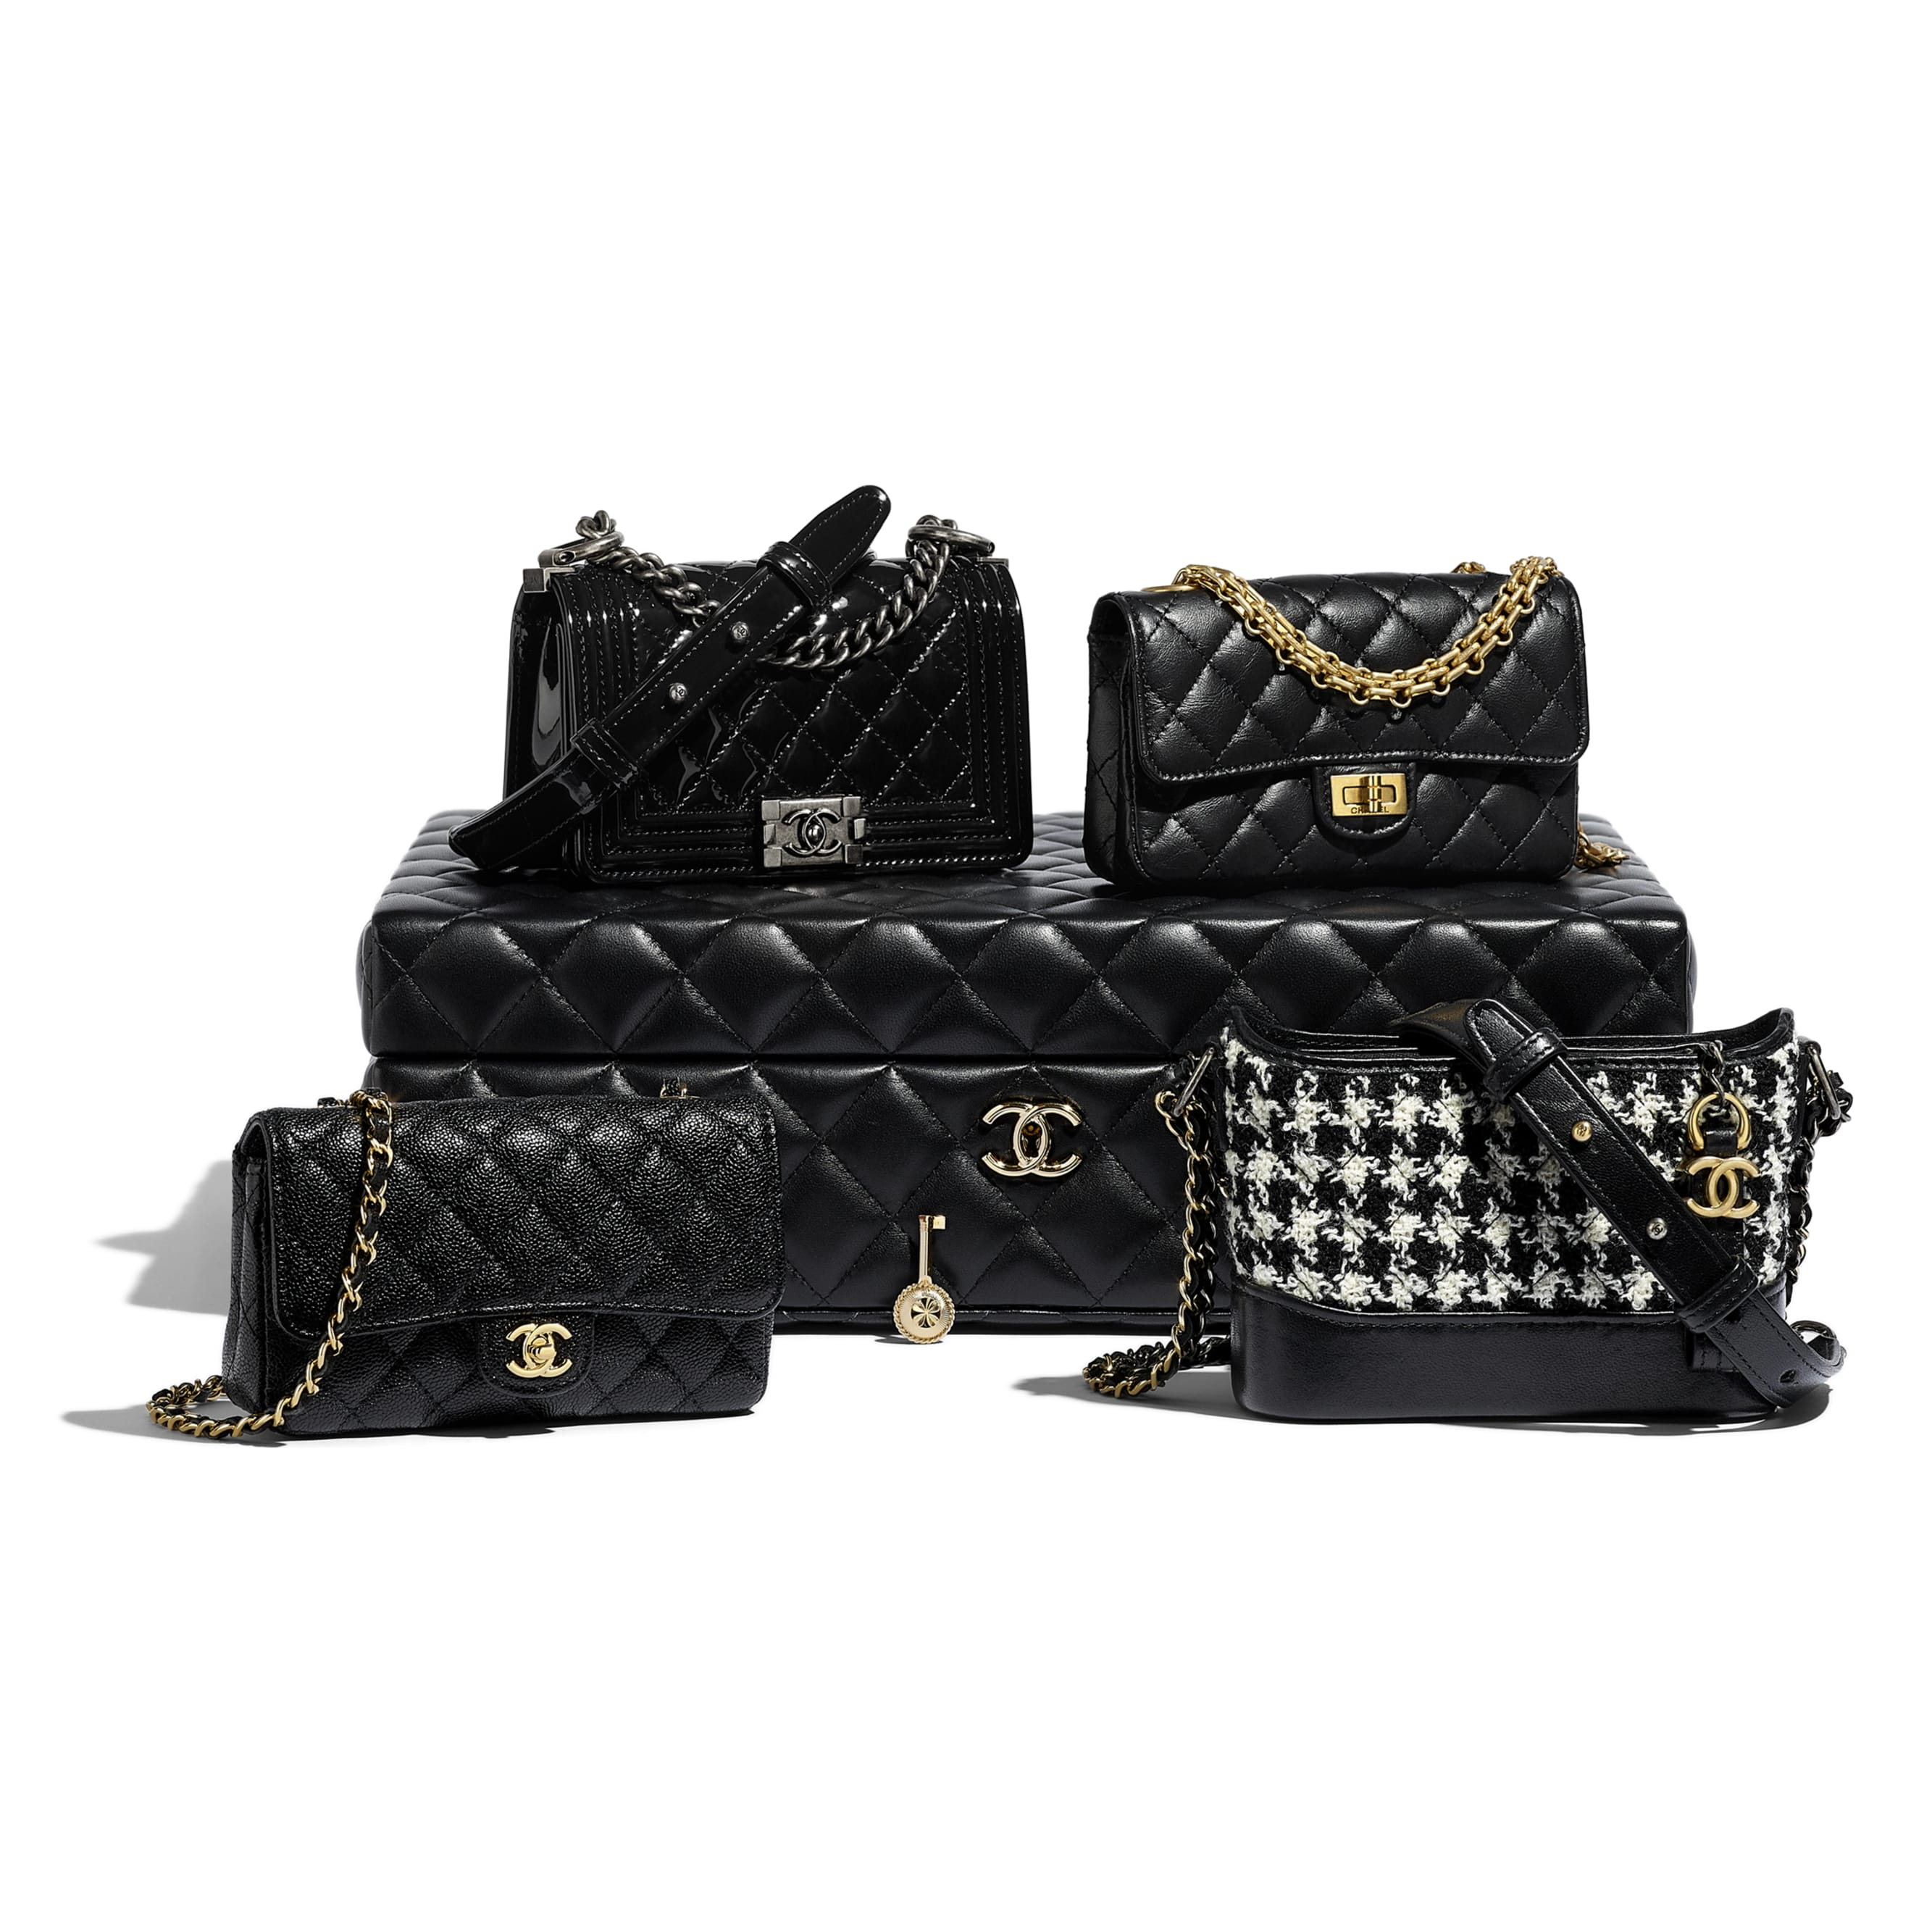 Set of 4 Minis Bags - Black - Lambskin, Calfskin, Tweed, Gold-Tone, Silver-Tone & Ruthenium-Finish Metal - CHANEL - Default view - see standard sized version